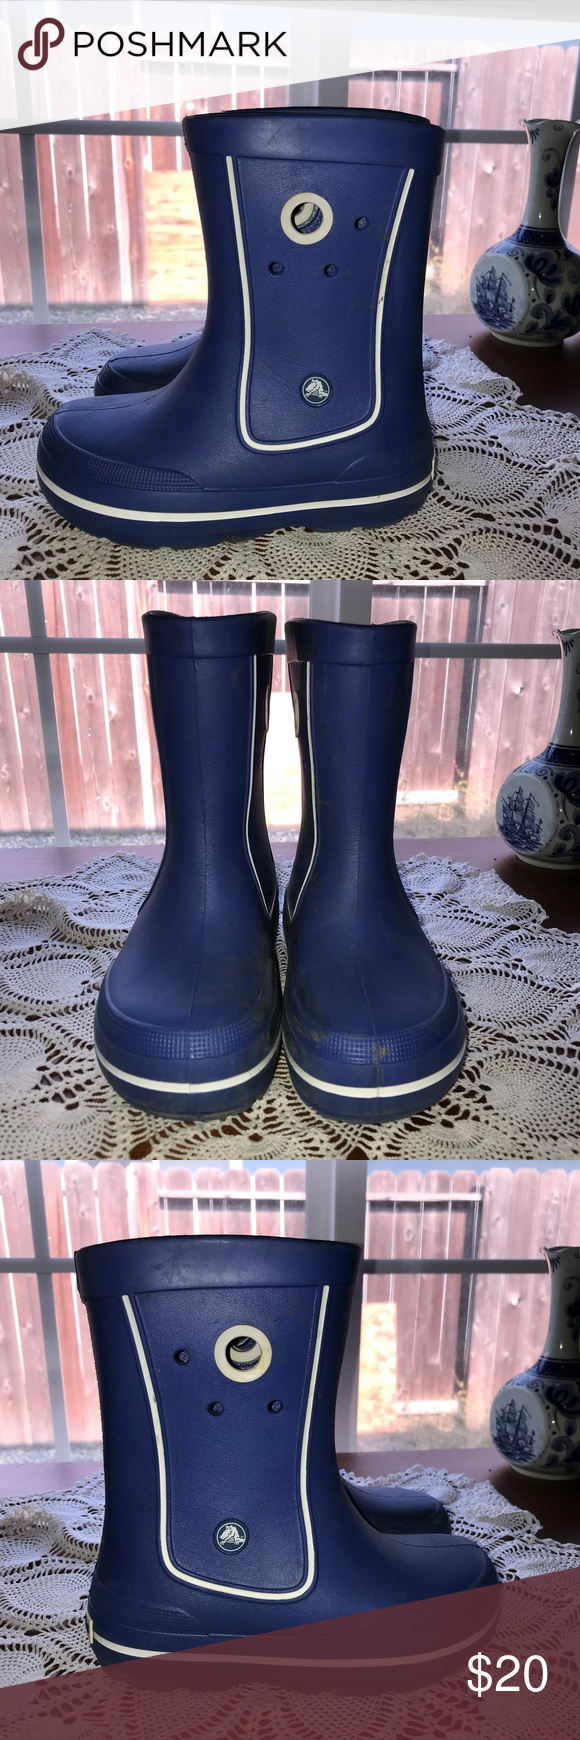 4bfefbbf198 Crocs Crocband Jaunt rain boots blue J 2 100% Authentic Kids CROCS Crocband  Jaunt Rain Boot Galoshes Shoes Size: J2 Color: Cerulean Blue Totally  waterproof ...